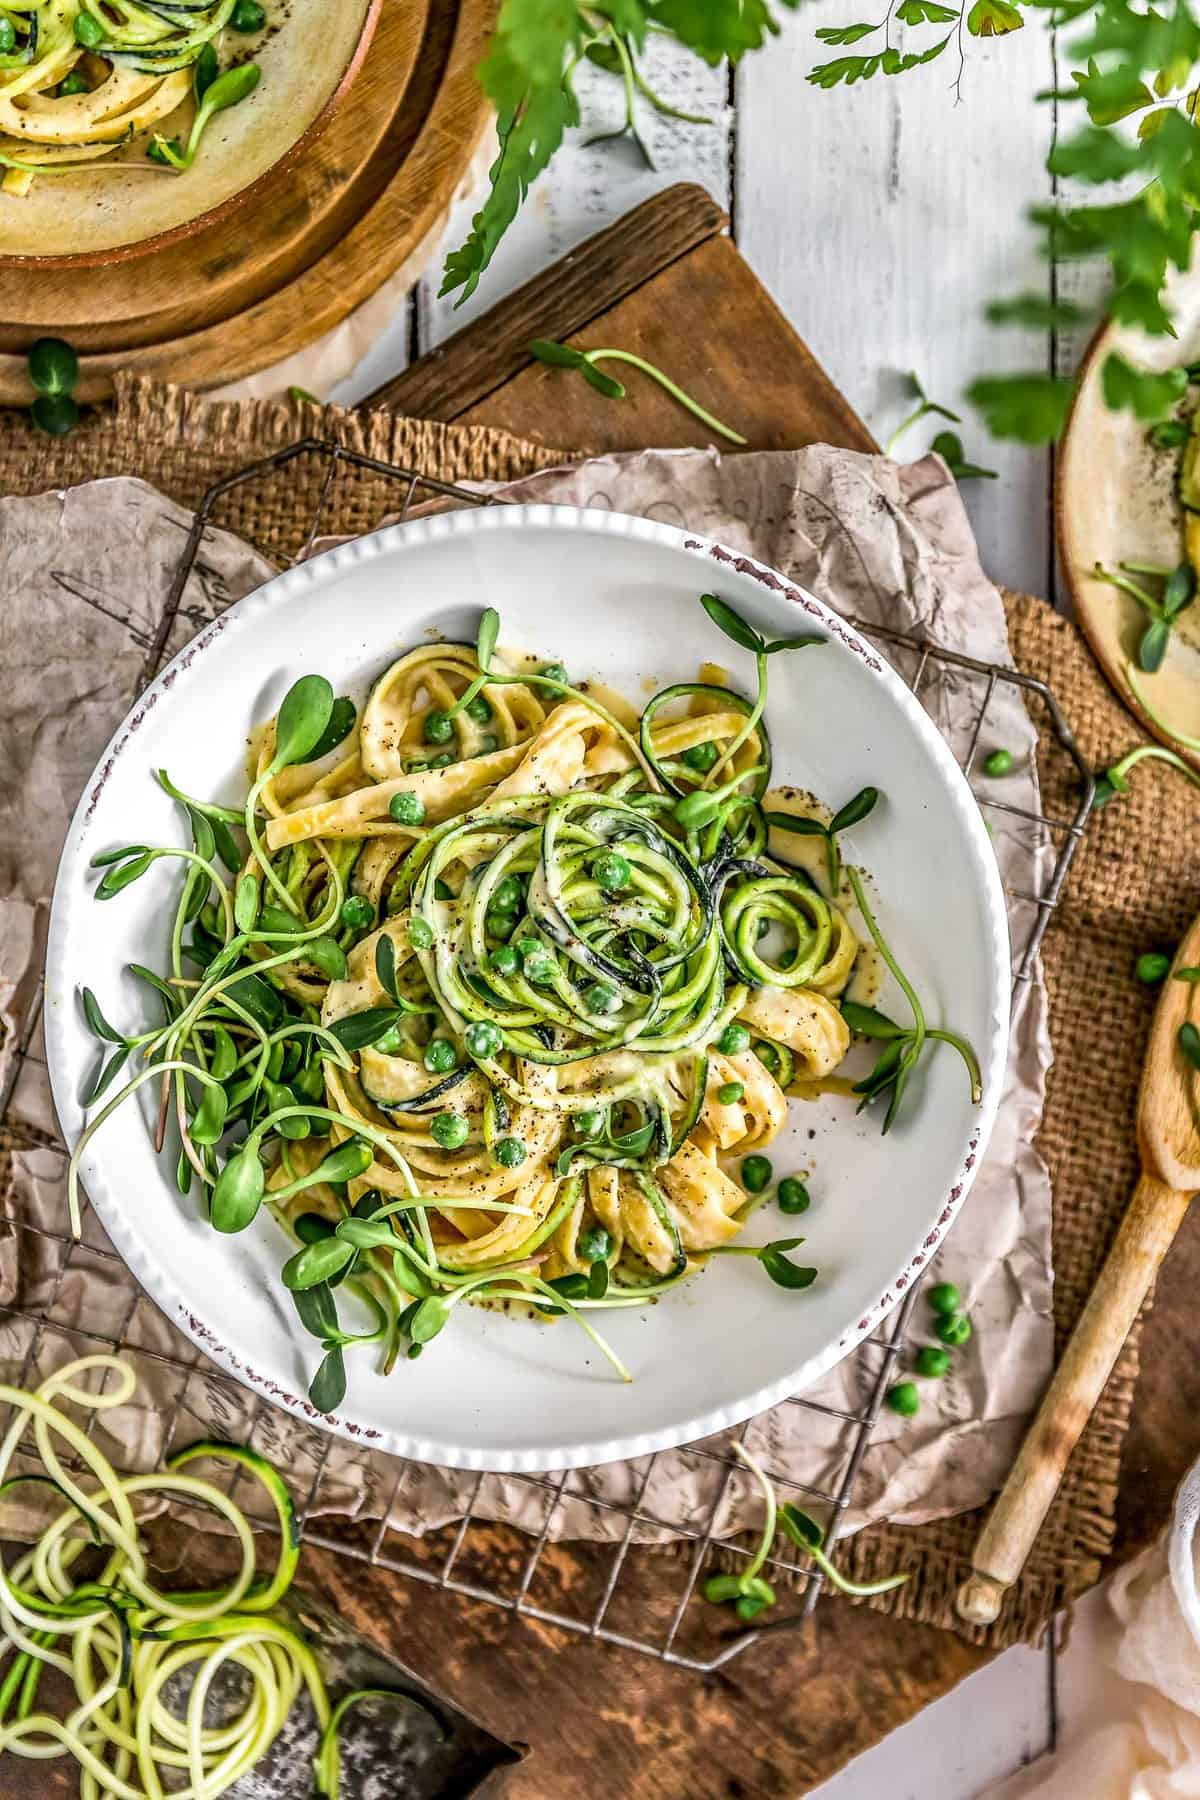 Tablescape of Vegan Cashew Alfredo Sauce with pasta